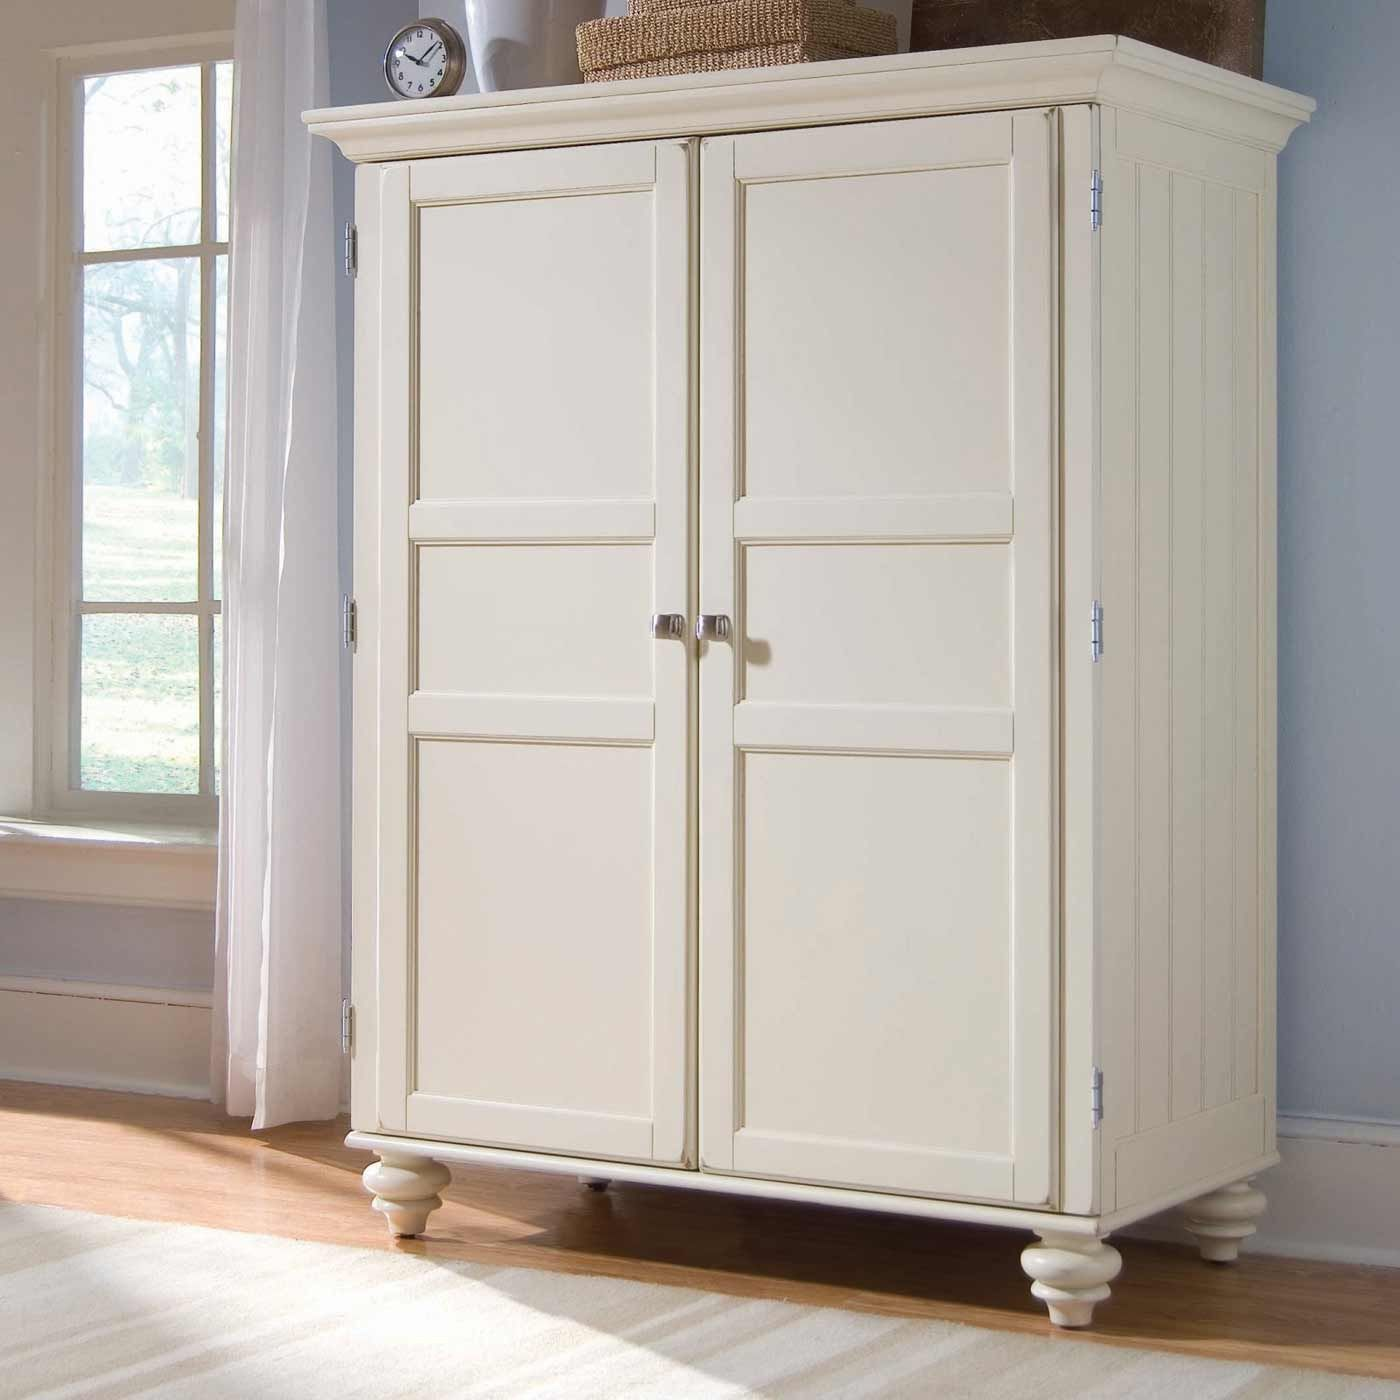 white armoire | Morgan cheap armoire desk in cream white | For the ...